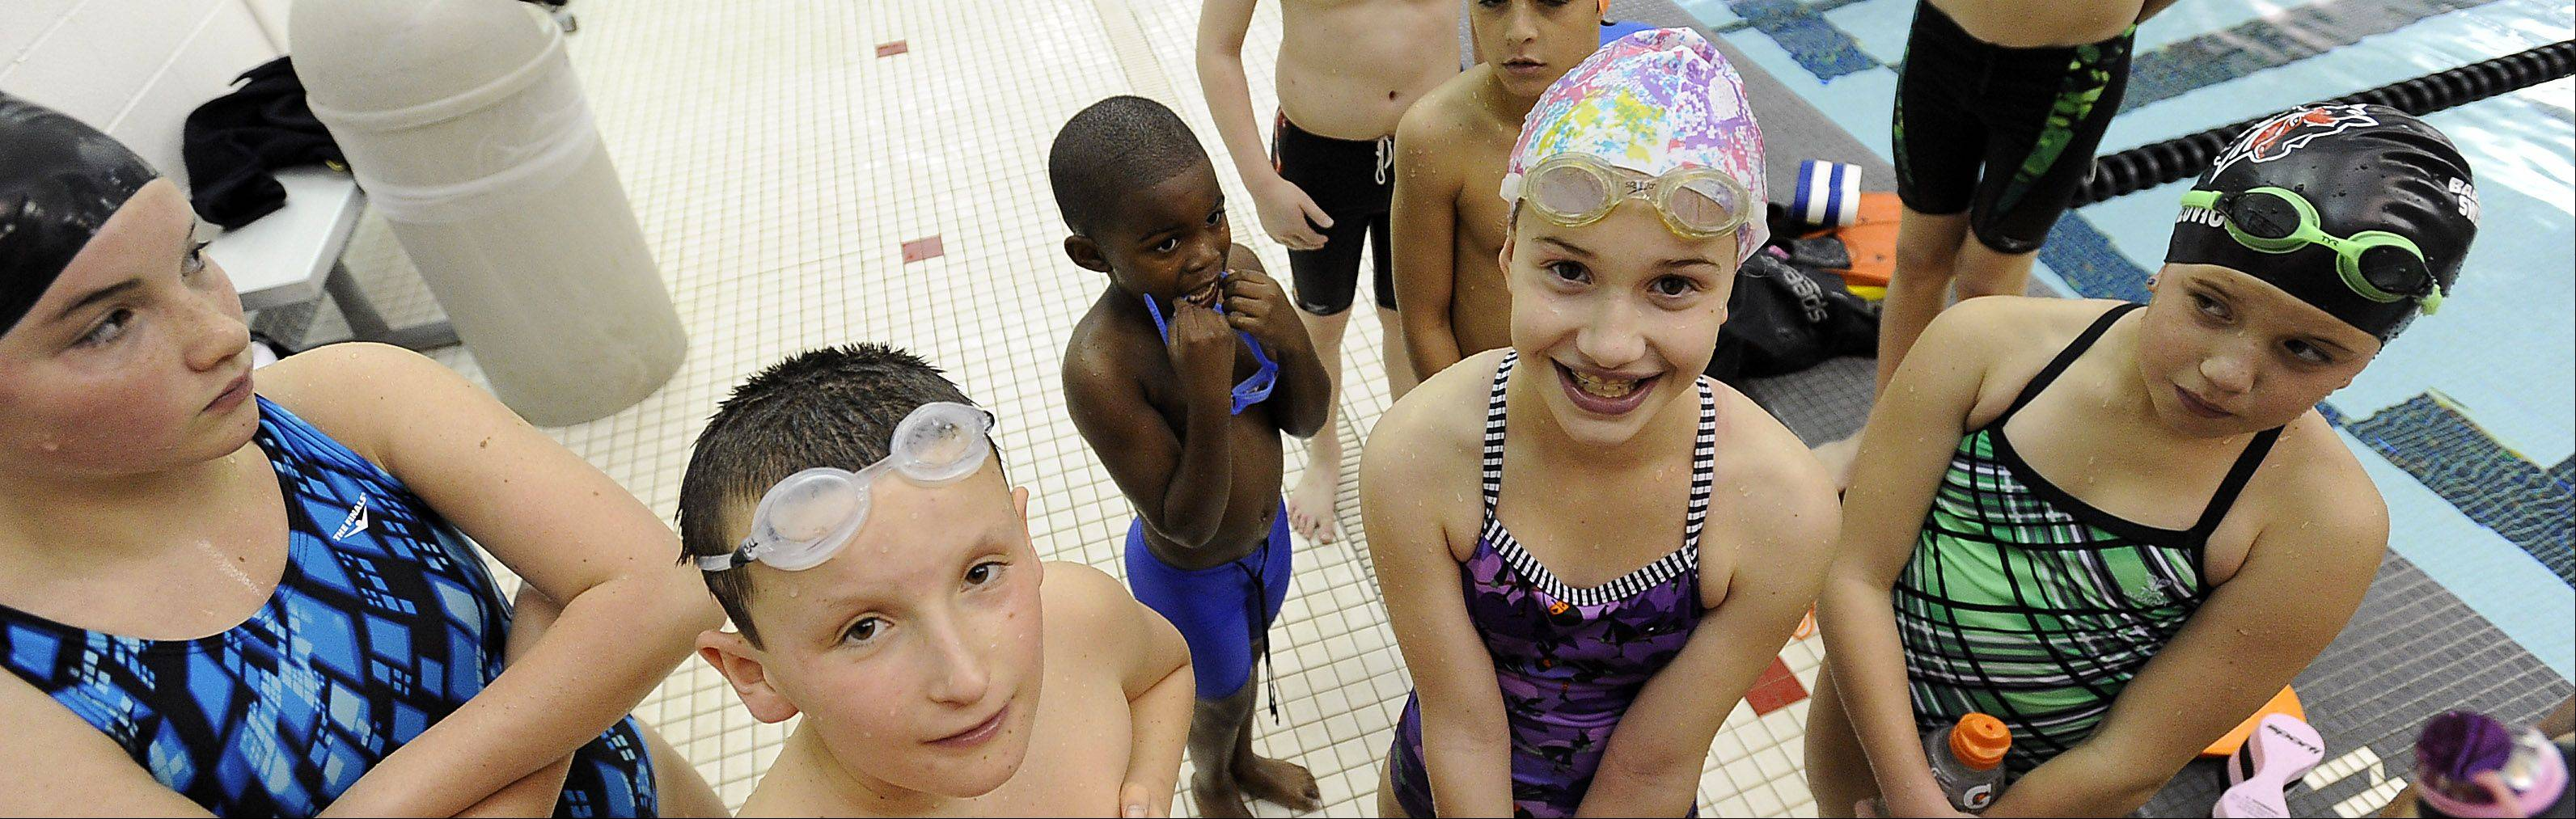 Joshua Mignott, 6, of the Jamaica Tornadoes Swim Club gets slightly overshadowed as swimmers listen to instructions from a coach during practice Friday with the Barrington Swim Club at Barrington High School.